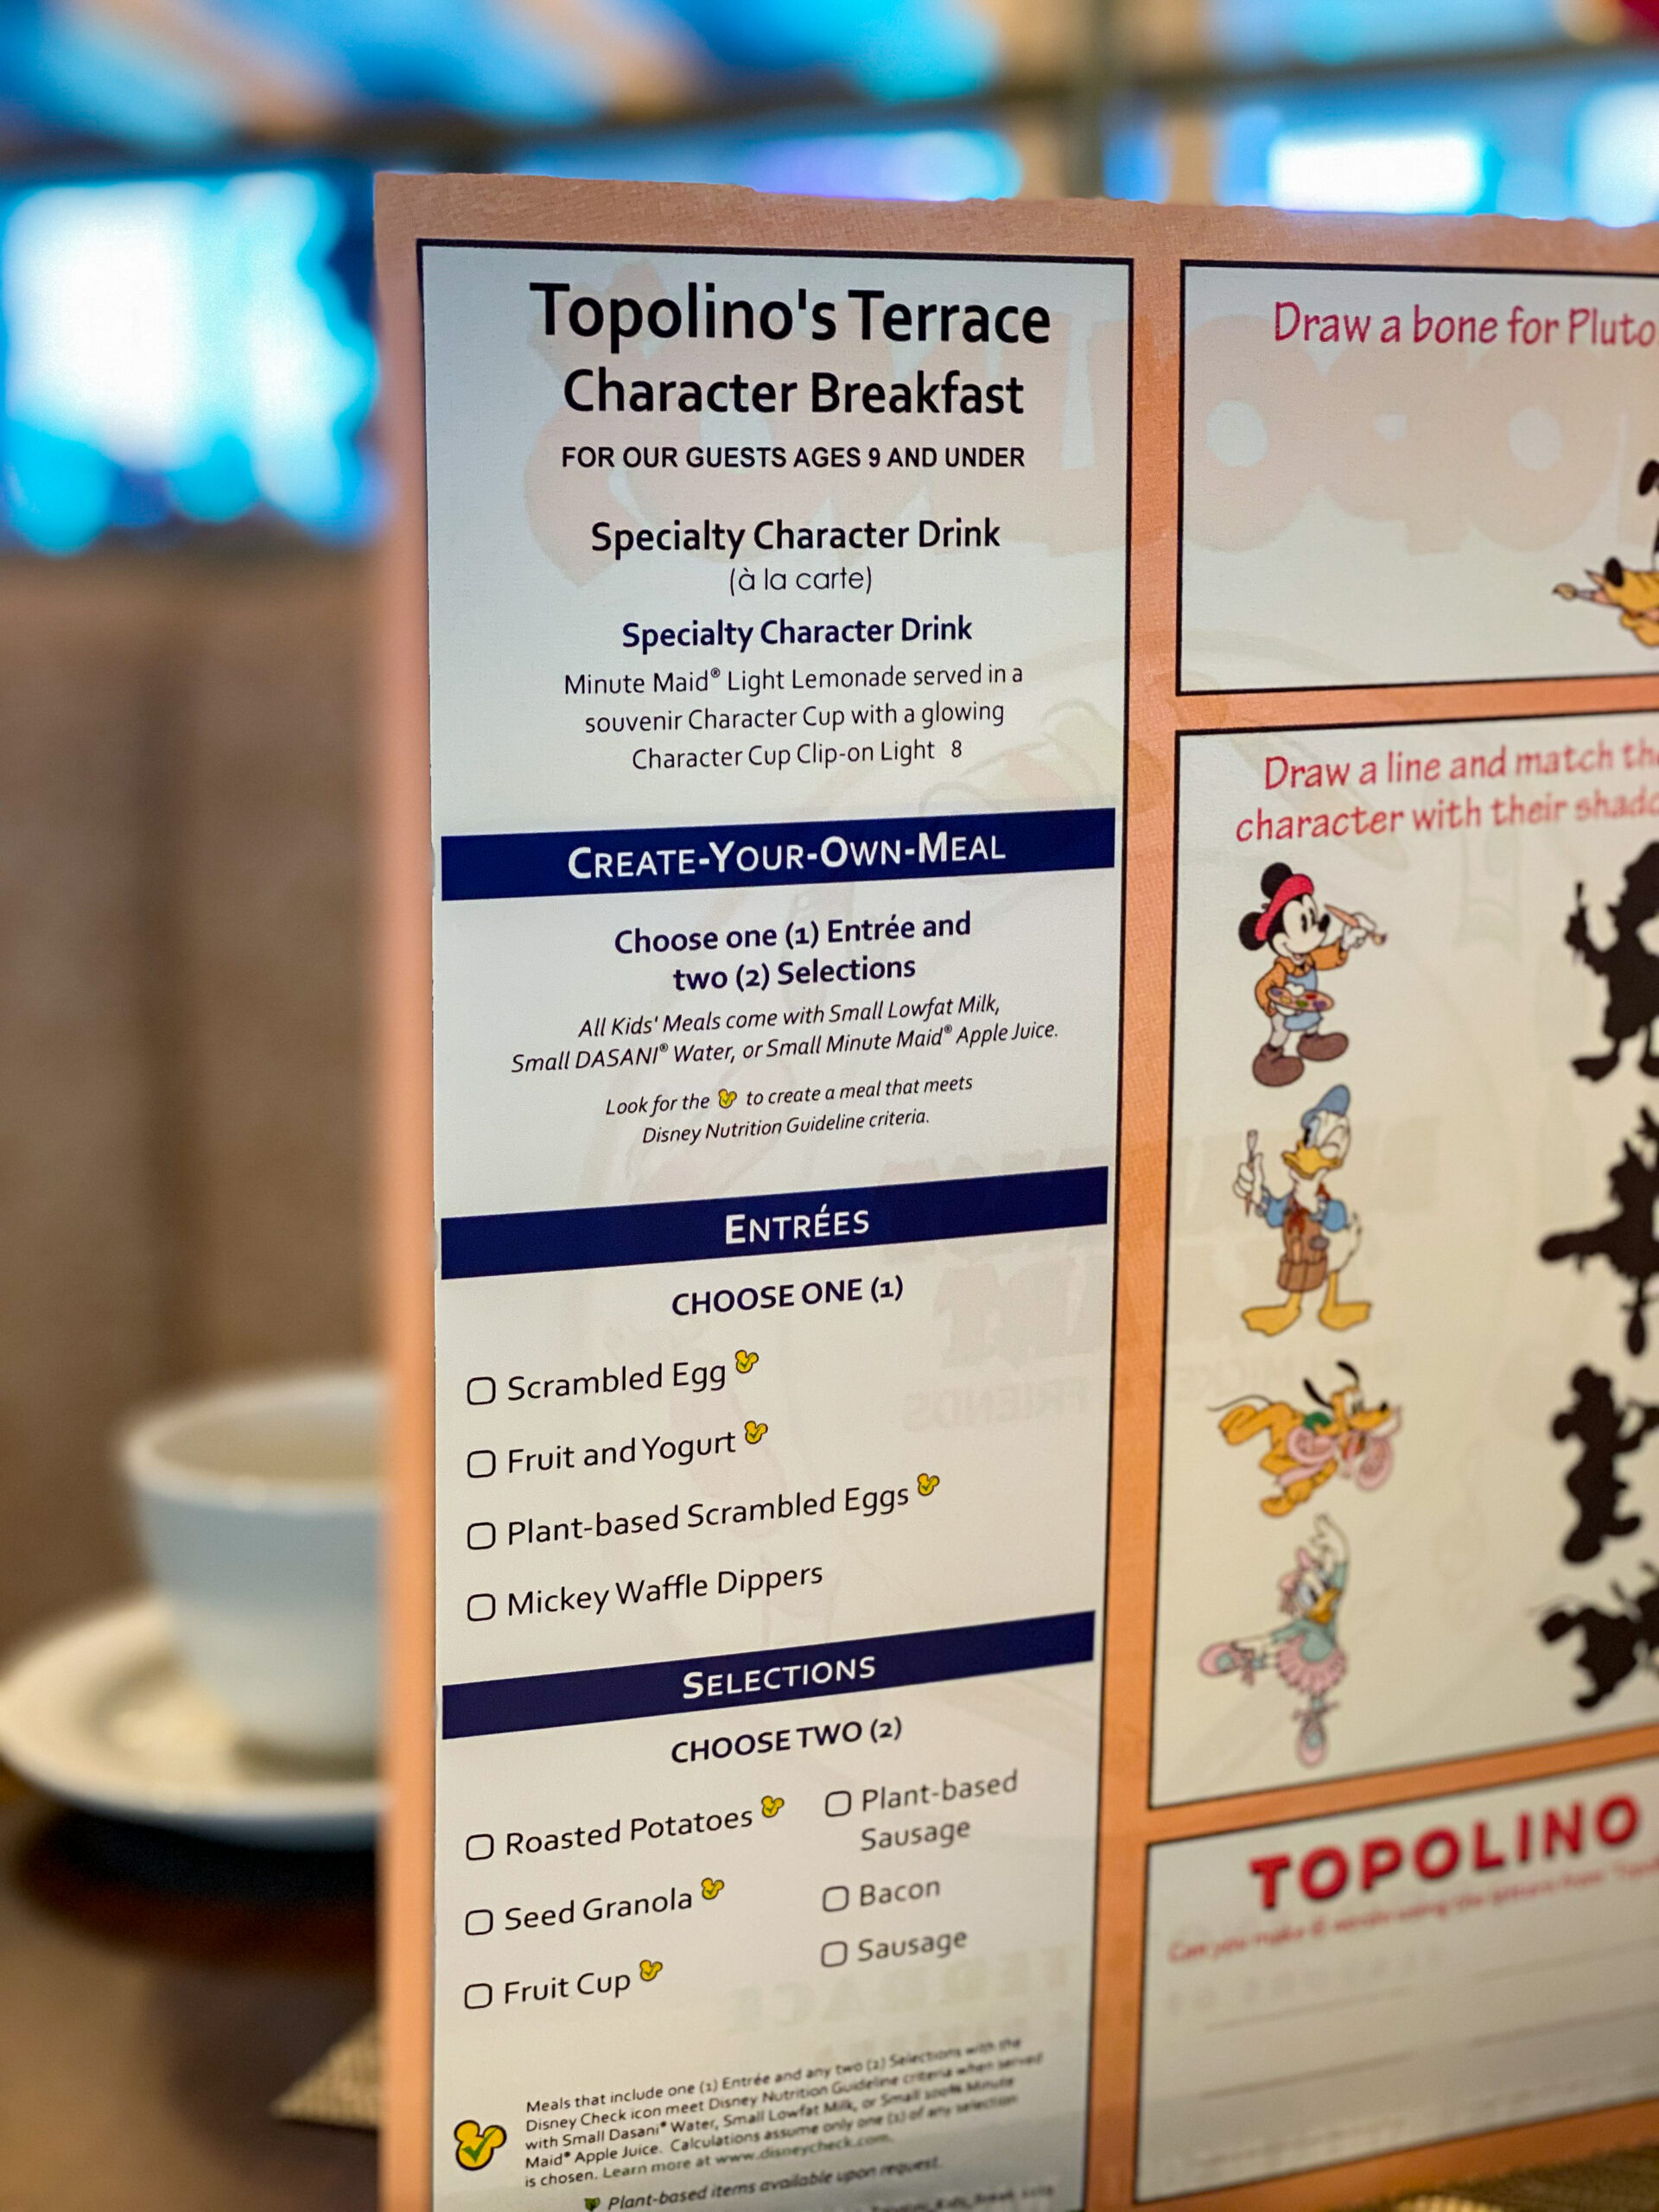 This review of the new Topolinos Terrace Character Breakfast rates the food, location+character interactions so that you can decide if it's worth booking!